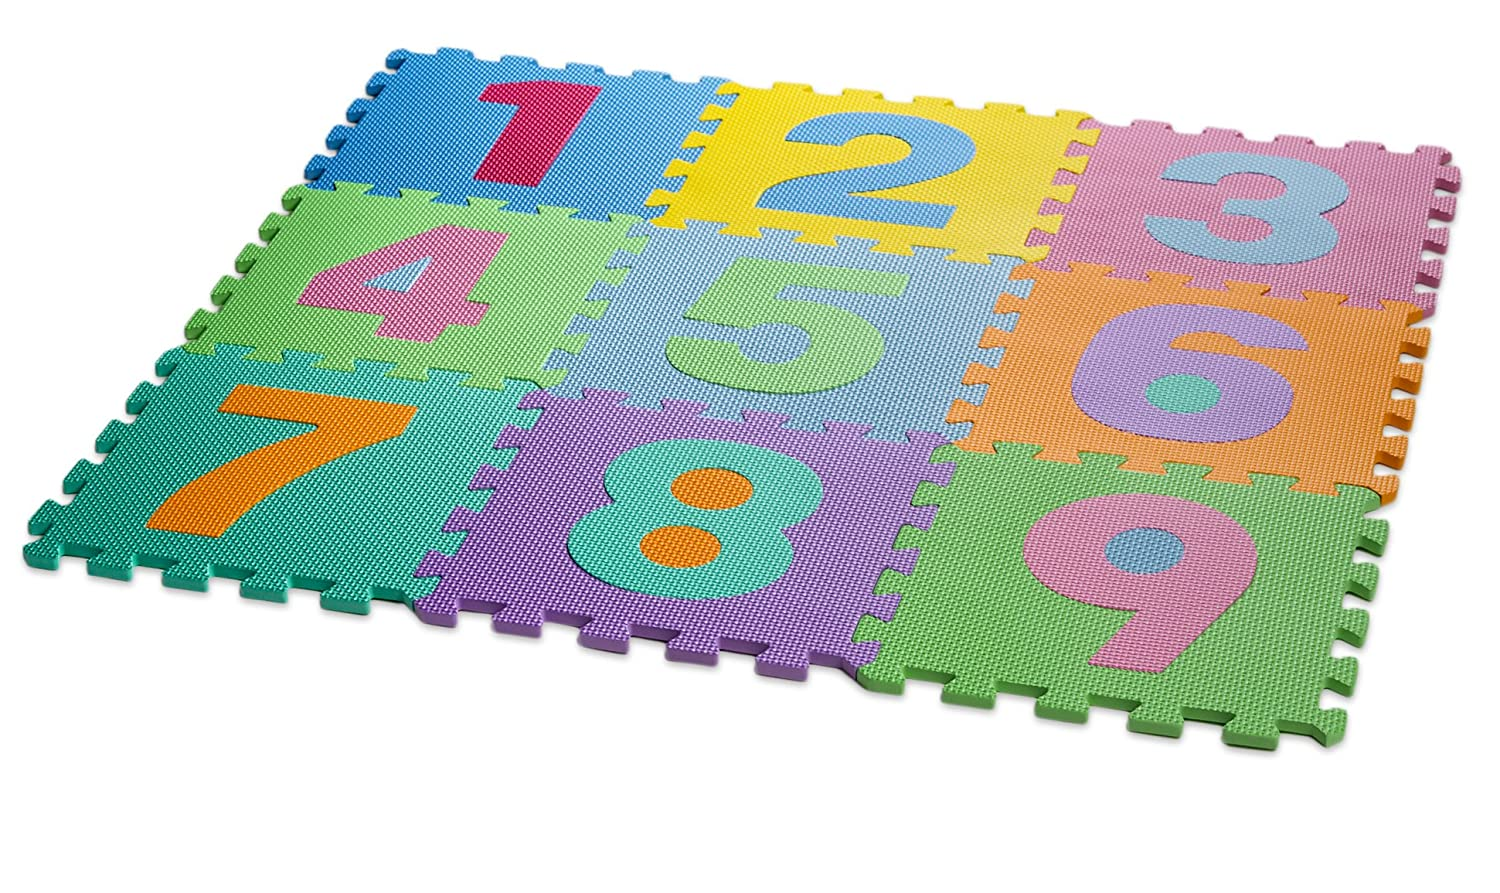 HemingWeigh Kid's Multicolored Numbers Puzzle Play Mat Soft and Safe EVA Foam Excellent for Day Care's Play Rooms Baby Rooms and playgrounds